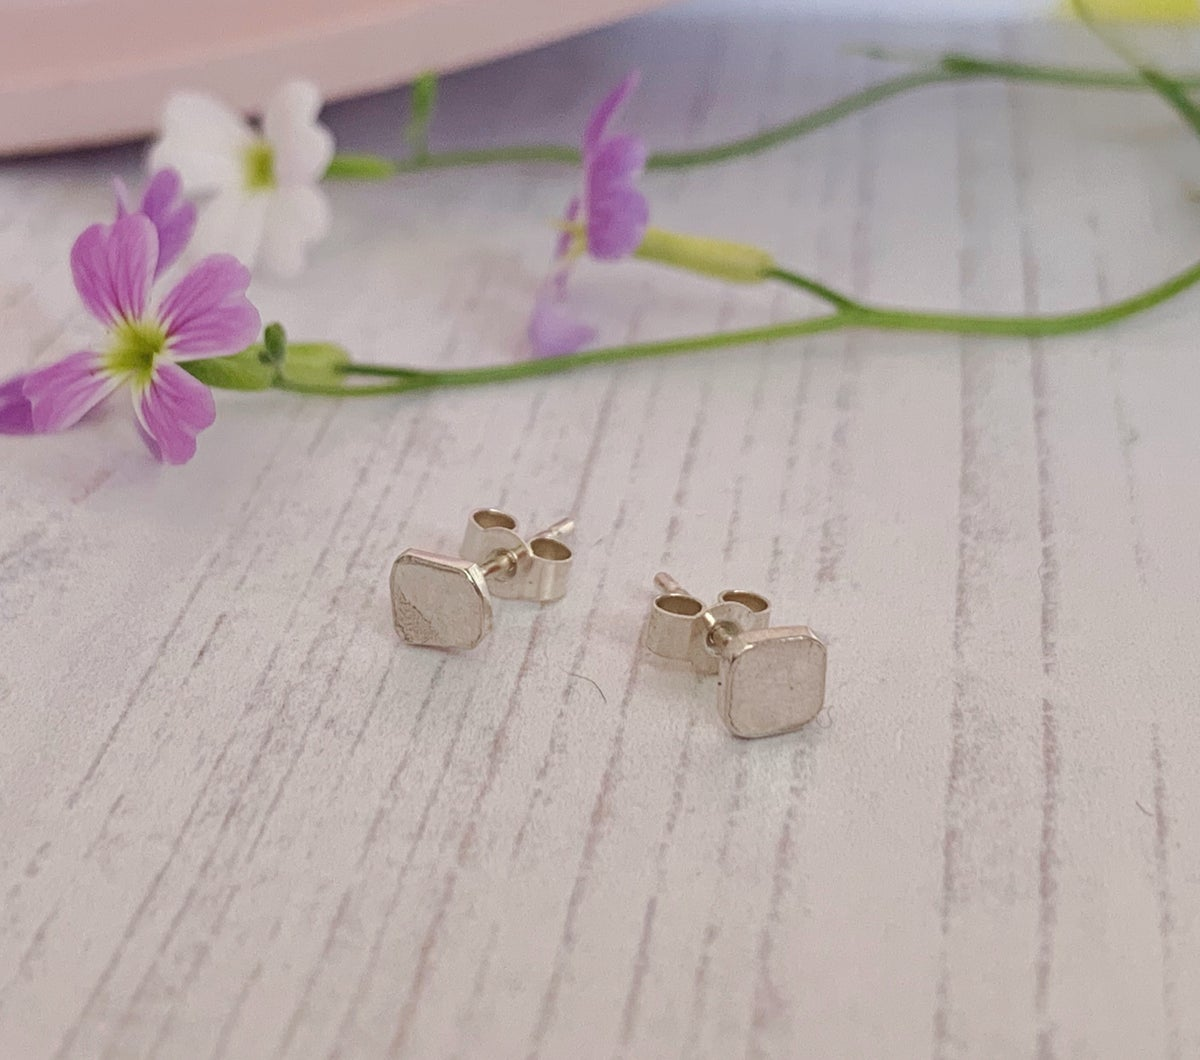 Image of Minimal small square studs, plain or textured